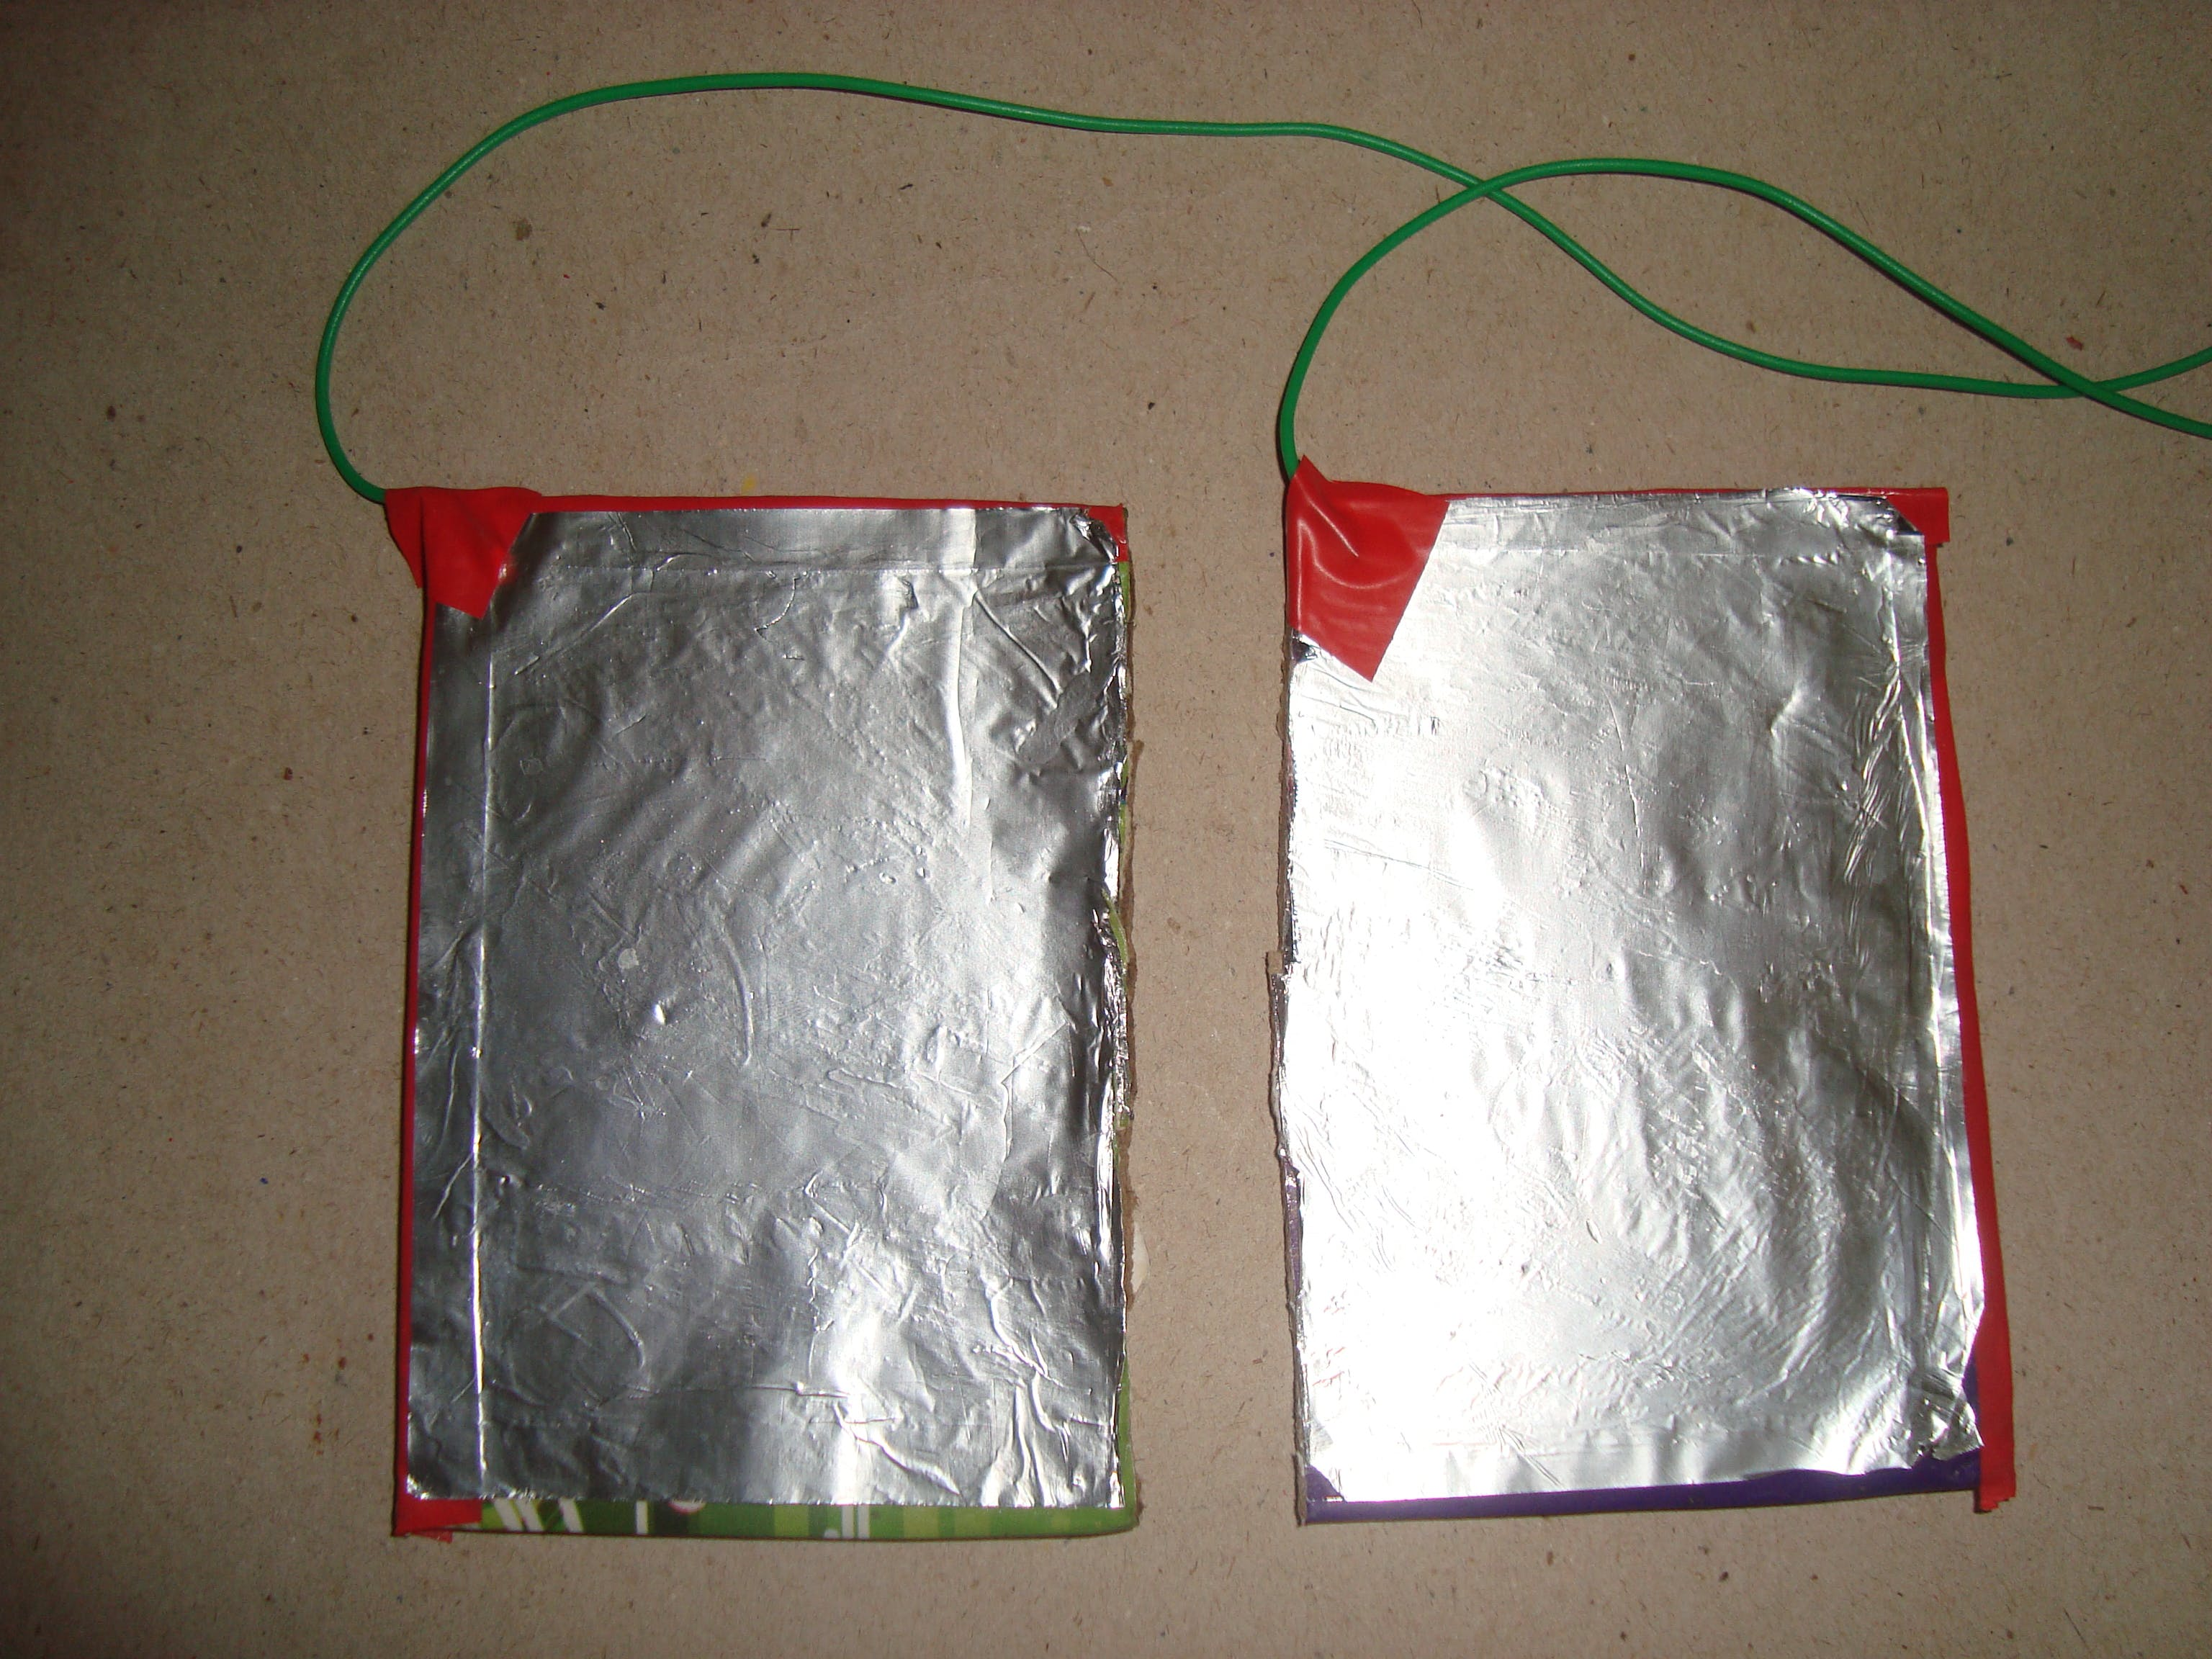 aluminum electrode (kitchen foil on cardboard base)